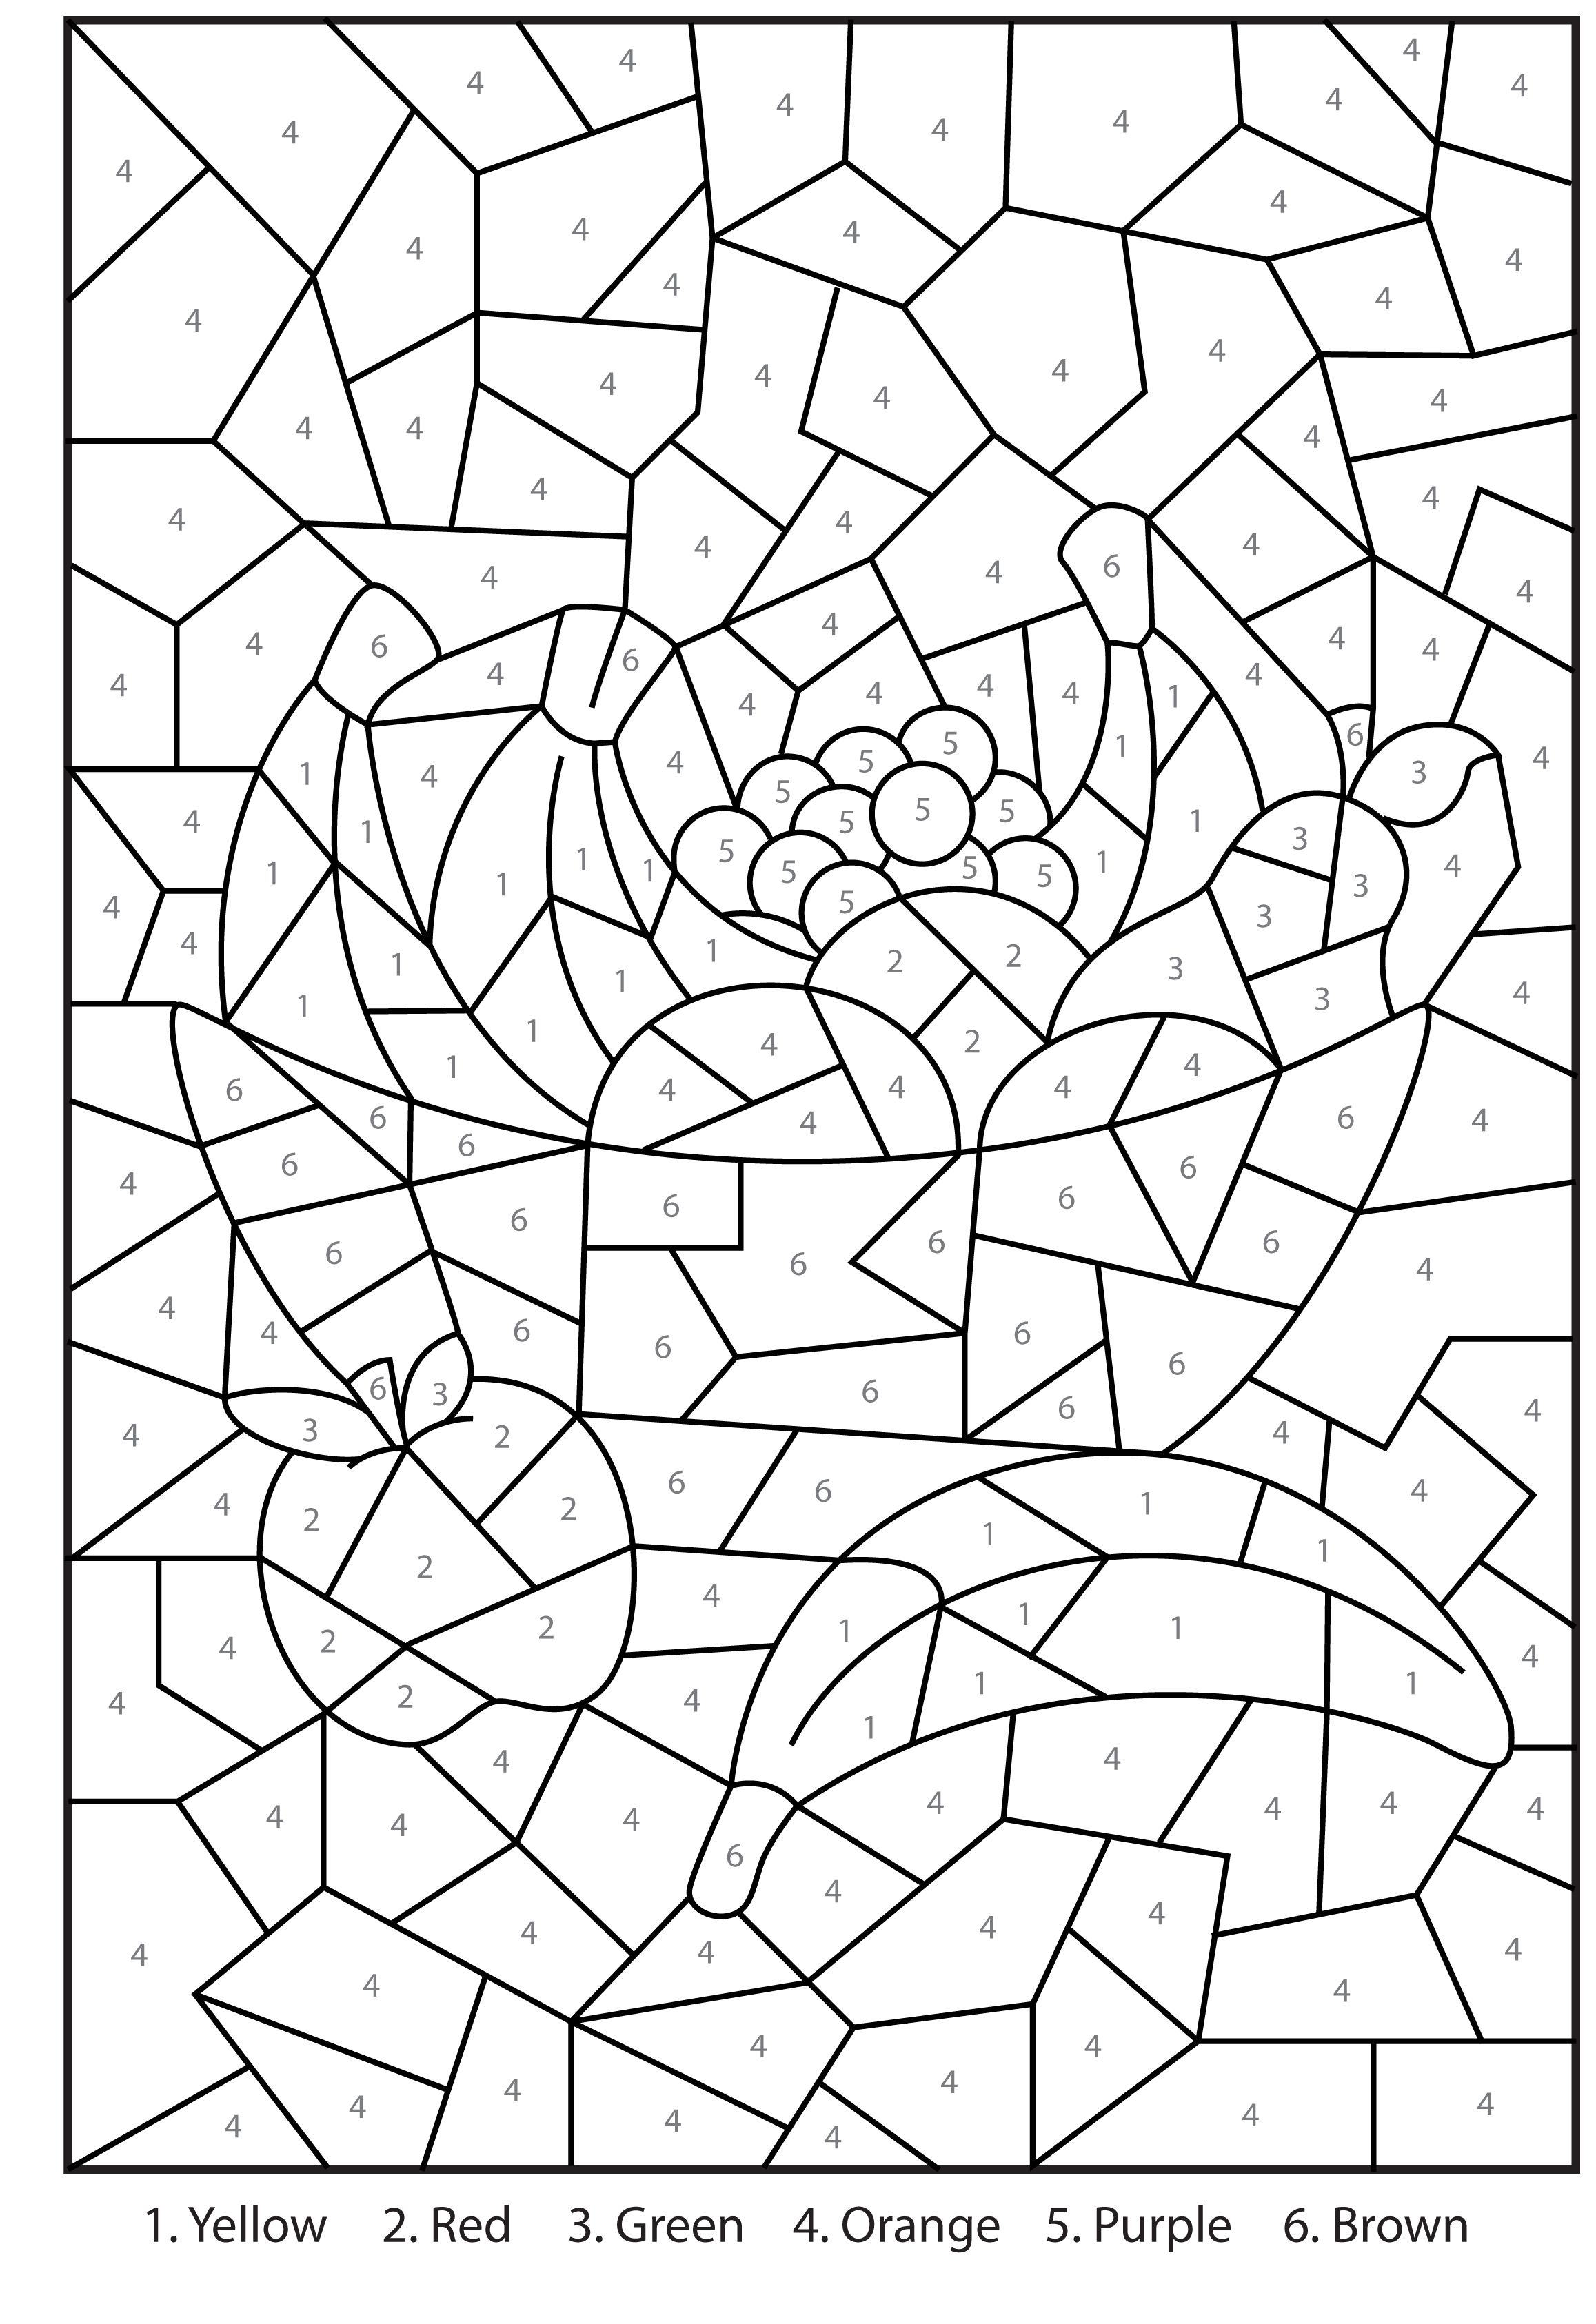 Christmas Coloring By Numbers Printable With Free Bowl Of Fruit Colour Activity For Kids